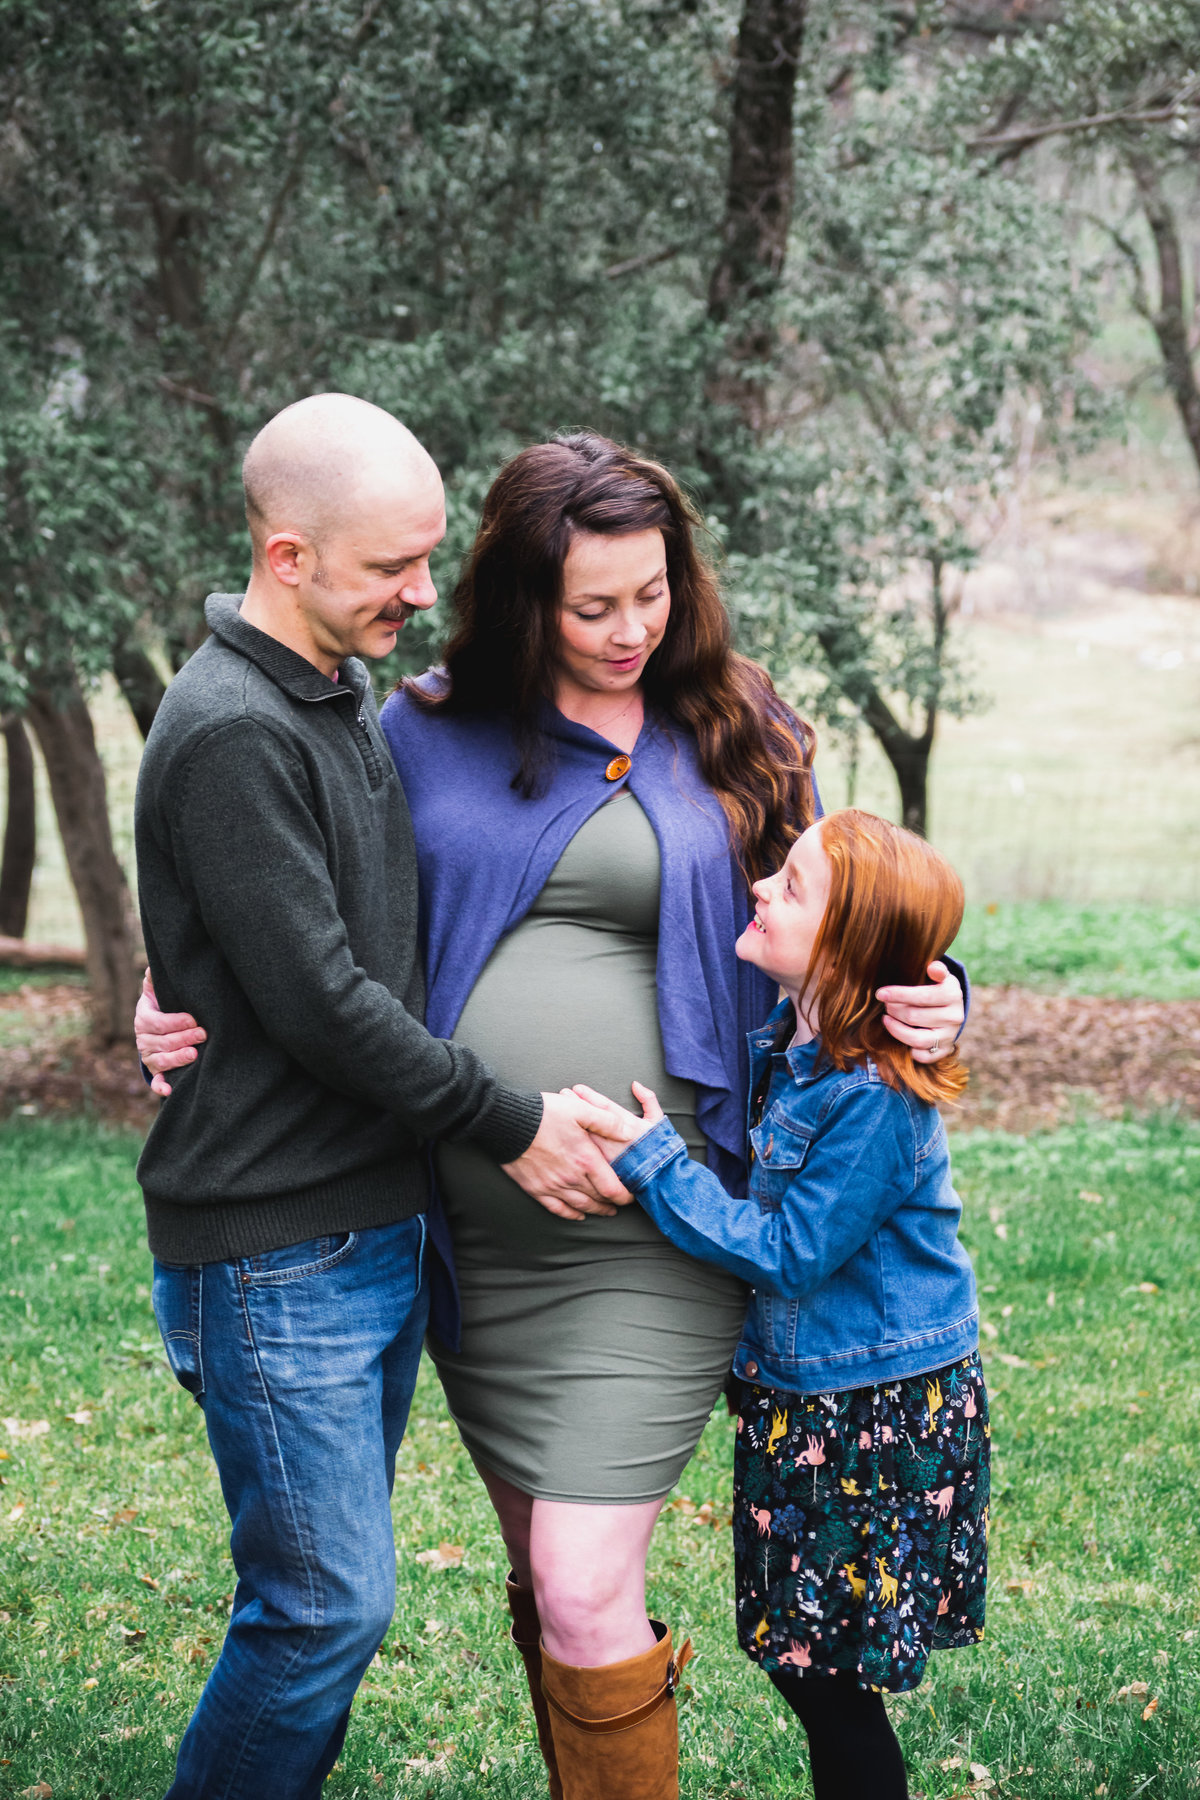 family maternity portrait of mom, dad and young girl in grassy field